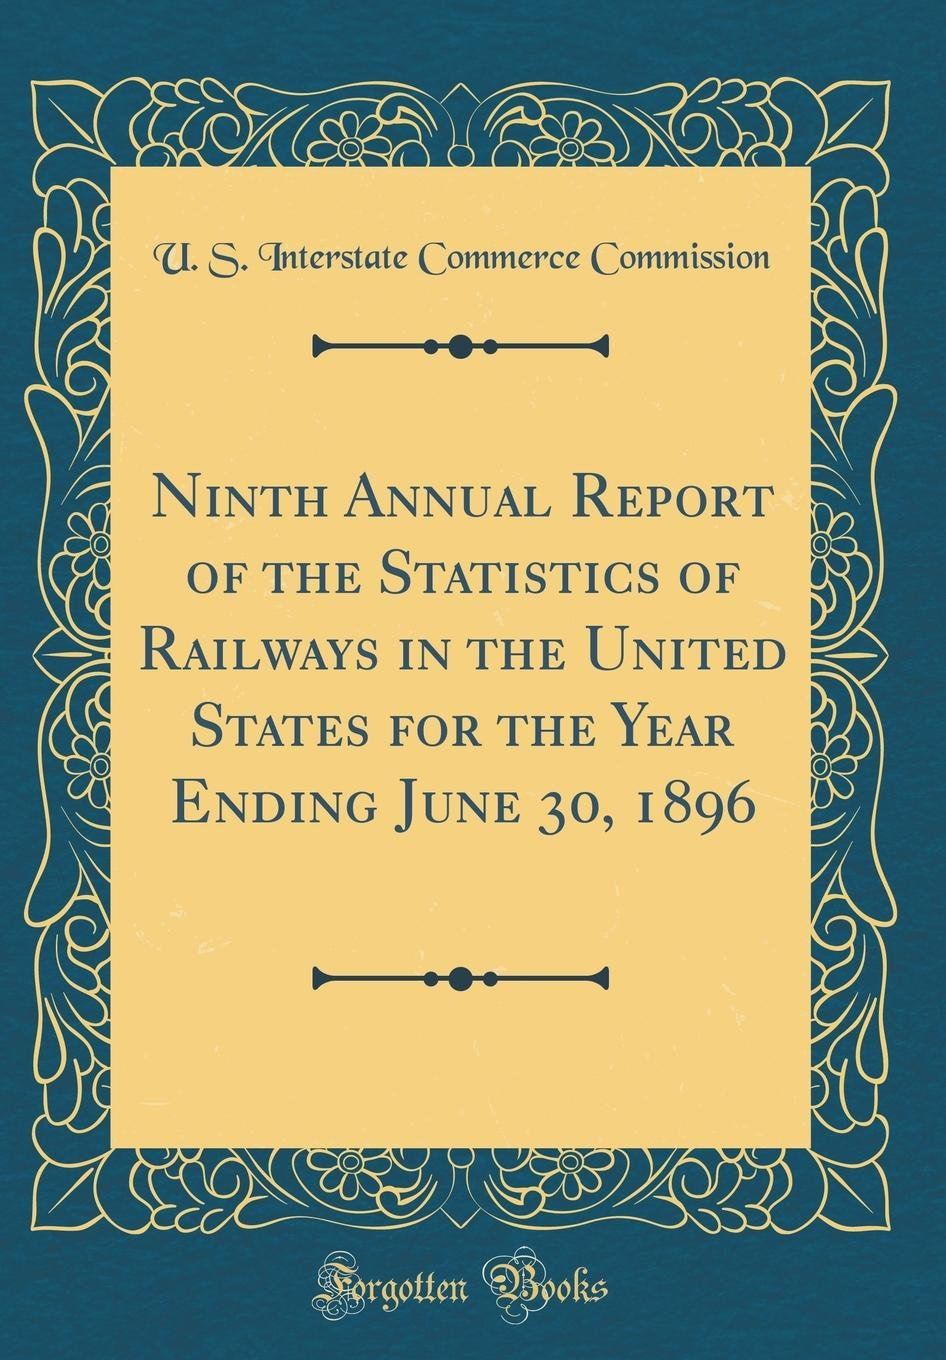 Ninth Annual Report of the Statistics of Railways in the United States for the Year Ending June 30, 1896 (Classic Reprint) PDF